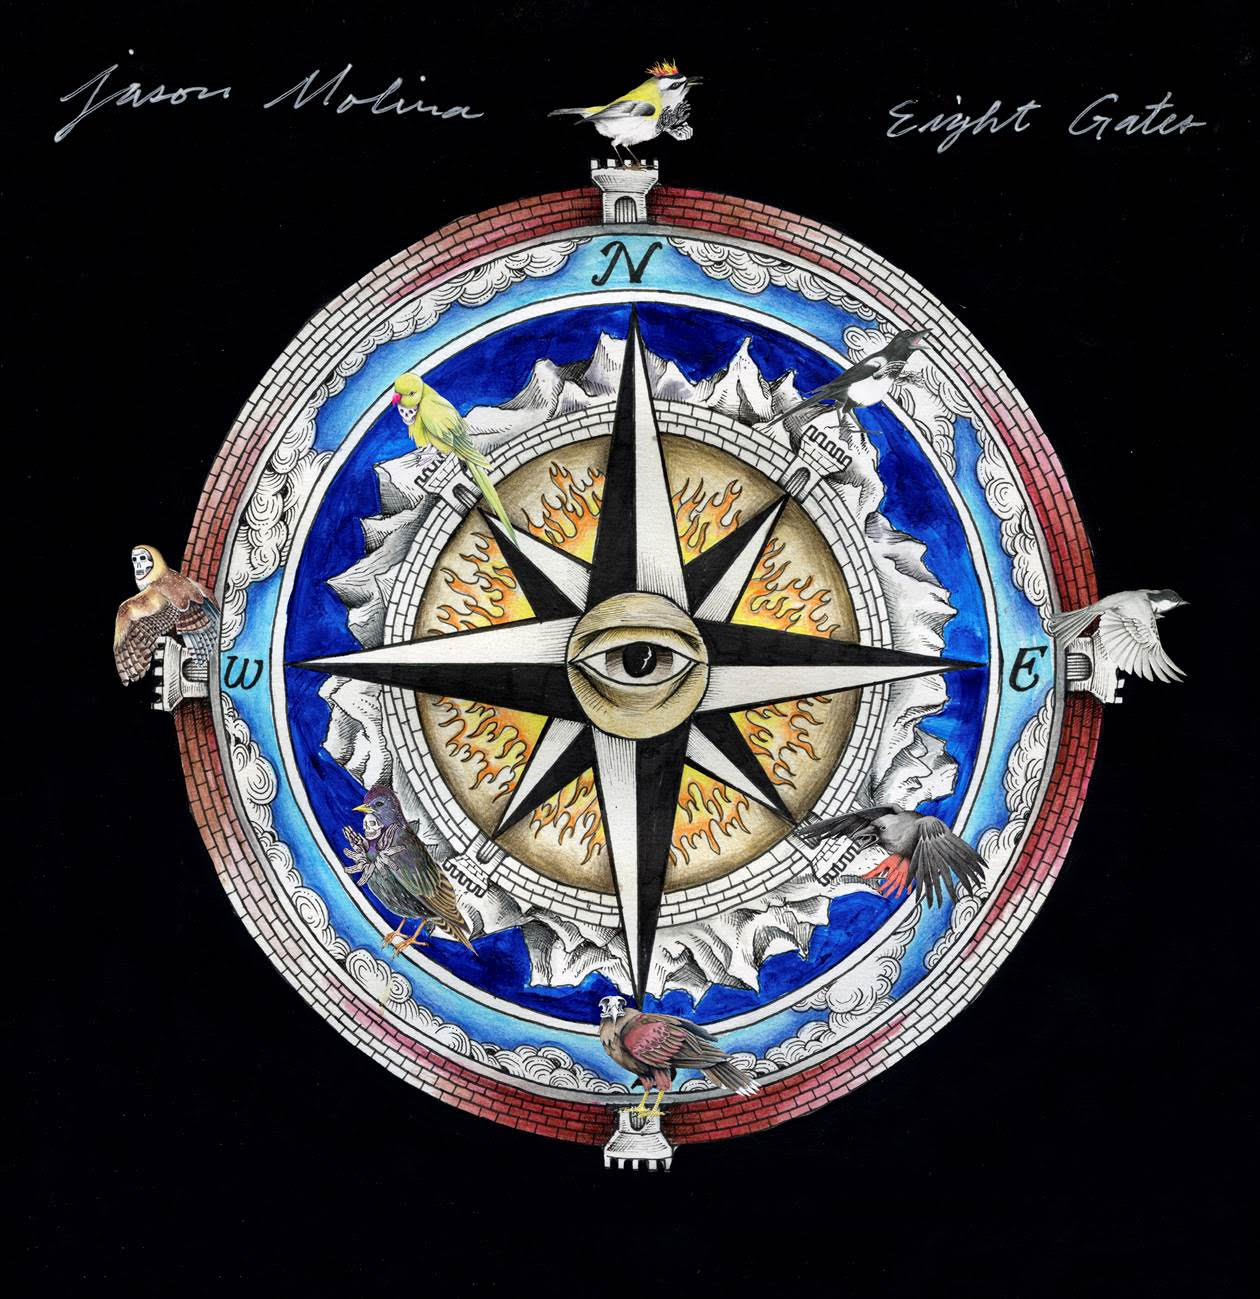 JASON MOLINA – Eight Gates – LP -Limited Shortcake Splash Vinyl [AUG 7th]